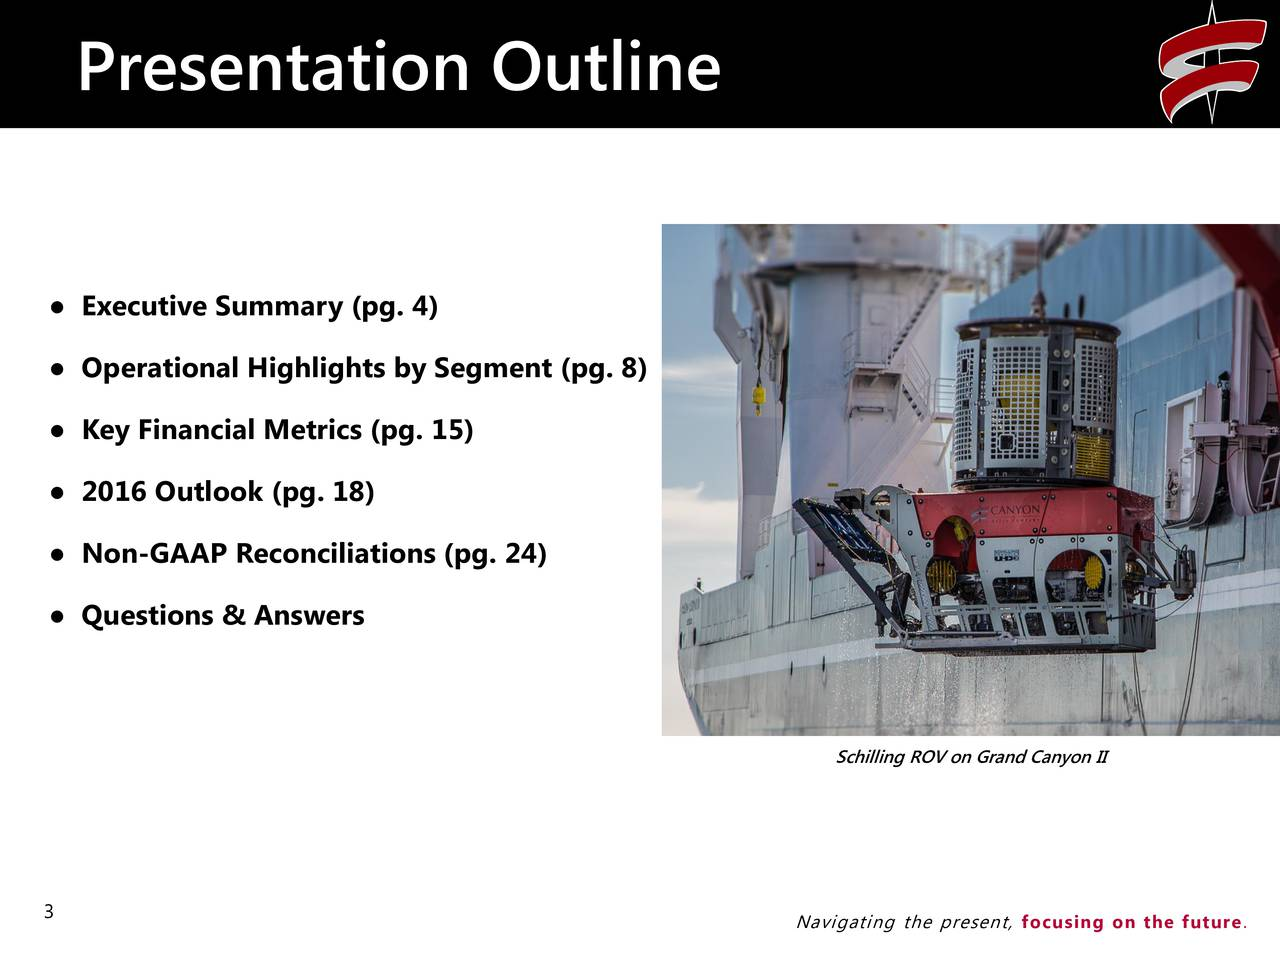 Executive Summary (pg. 4) Operational Highlights by Segment (pg. 8) Key Financial Metrics (pg. 15) 2016 Outlook (pg. 18) Non-GAAP Reconciliations (pg. 24) Questions & Answers Schilling ROV on Grand Canyon II 3 Navigating the present, focusing on the future.